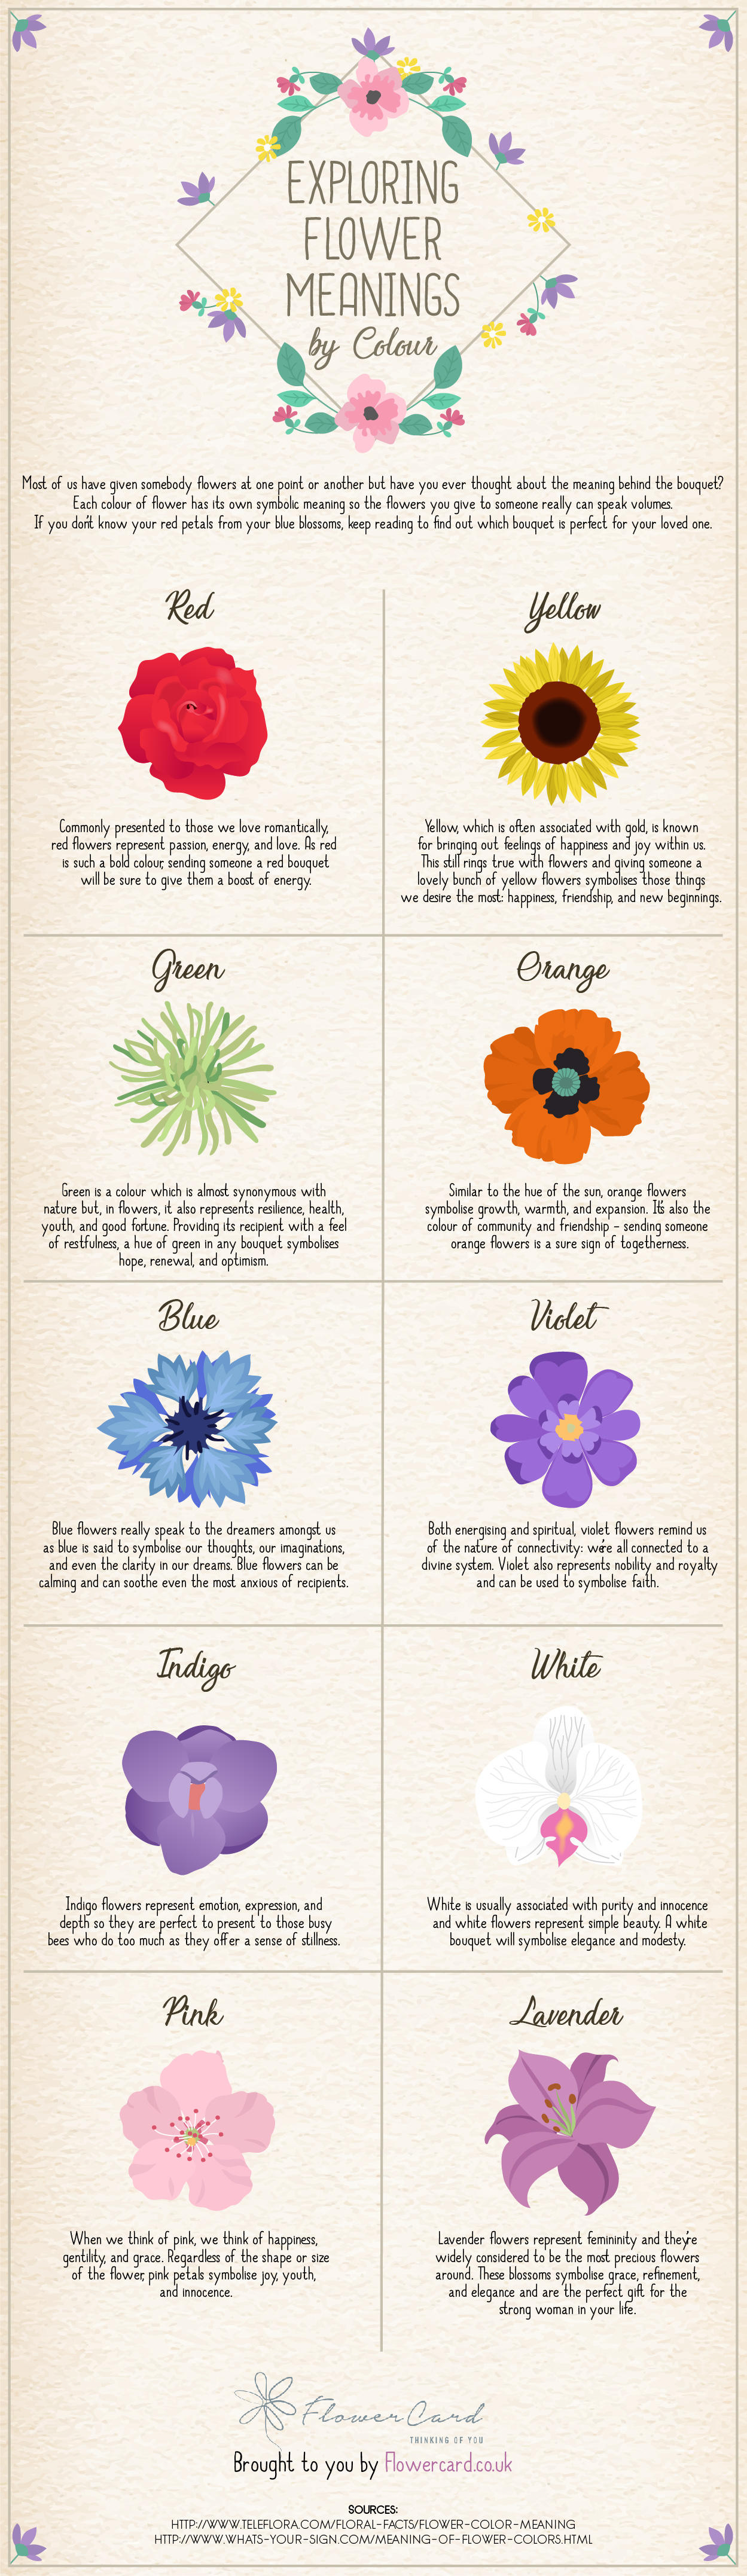 Exploring Flower Meanings By Colour [Infographic] — Flowercard ...